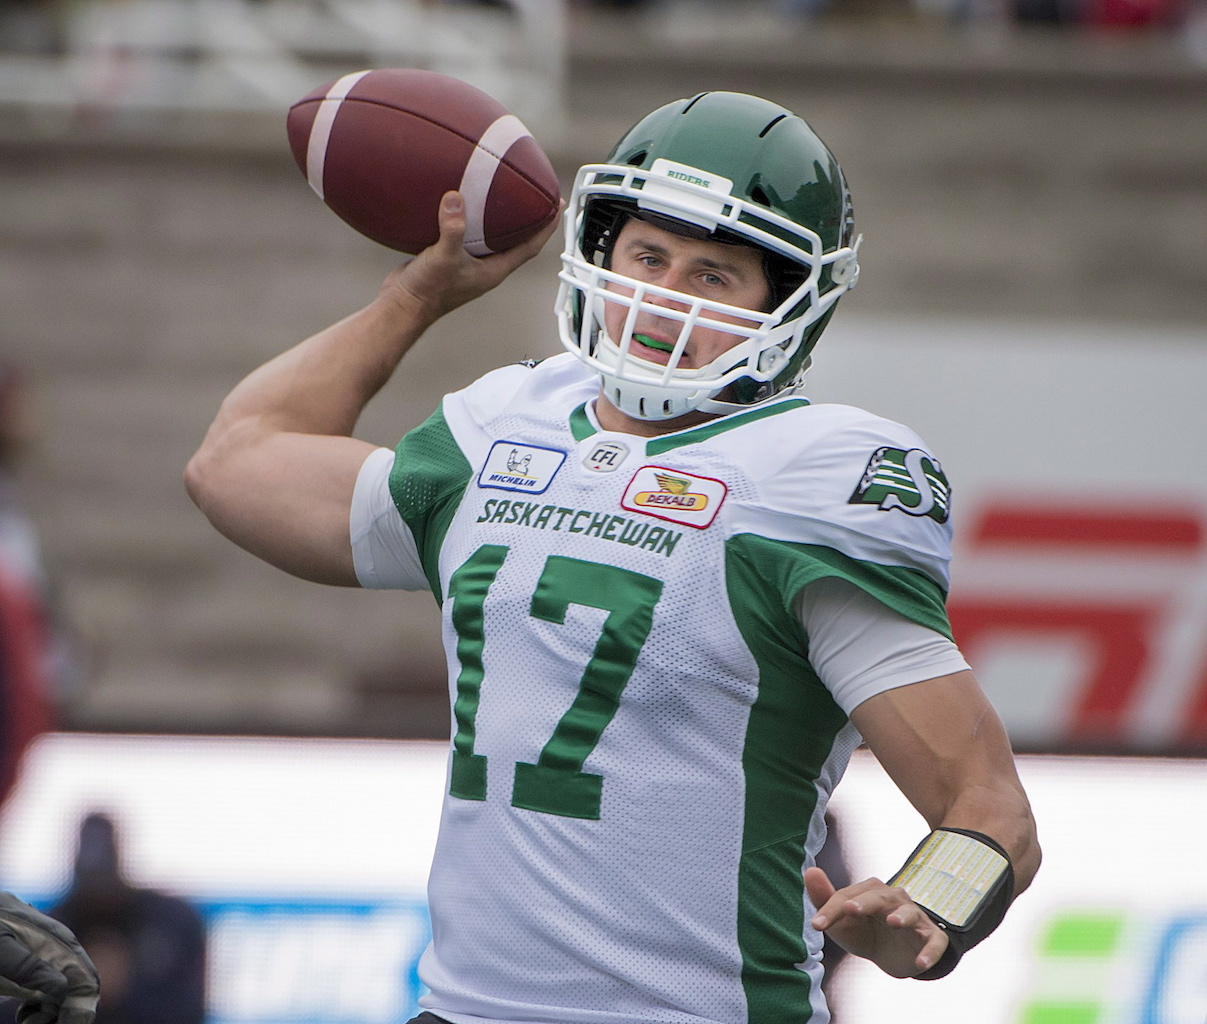 Riders improve to 9-5 with win at Montreal